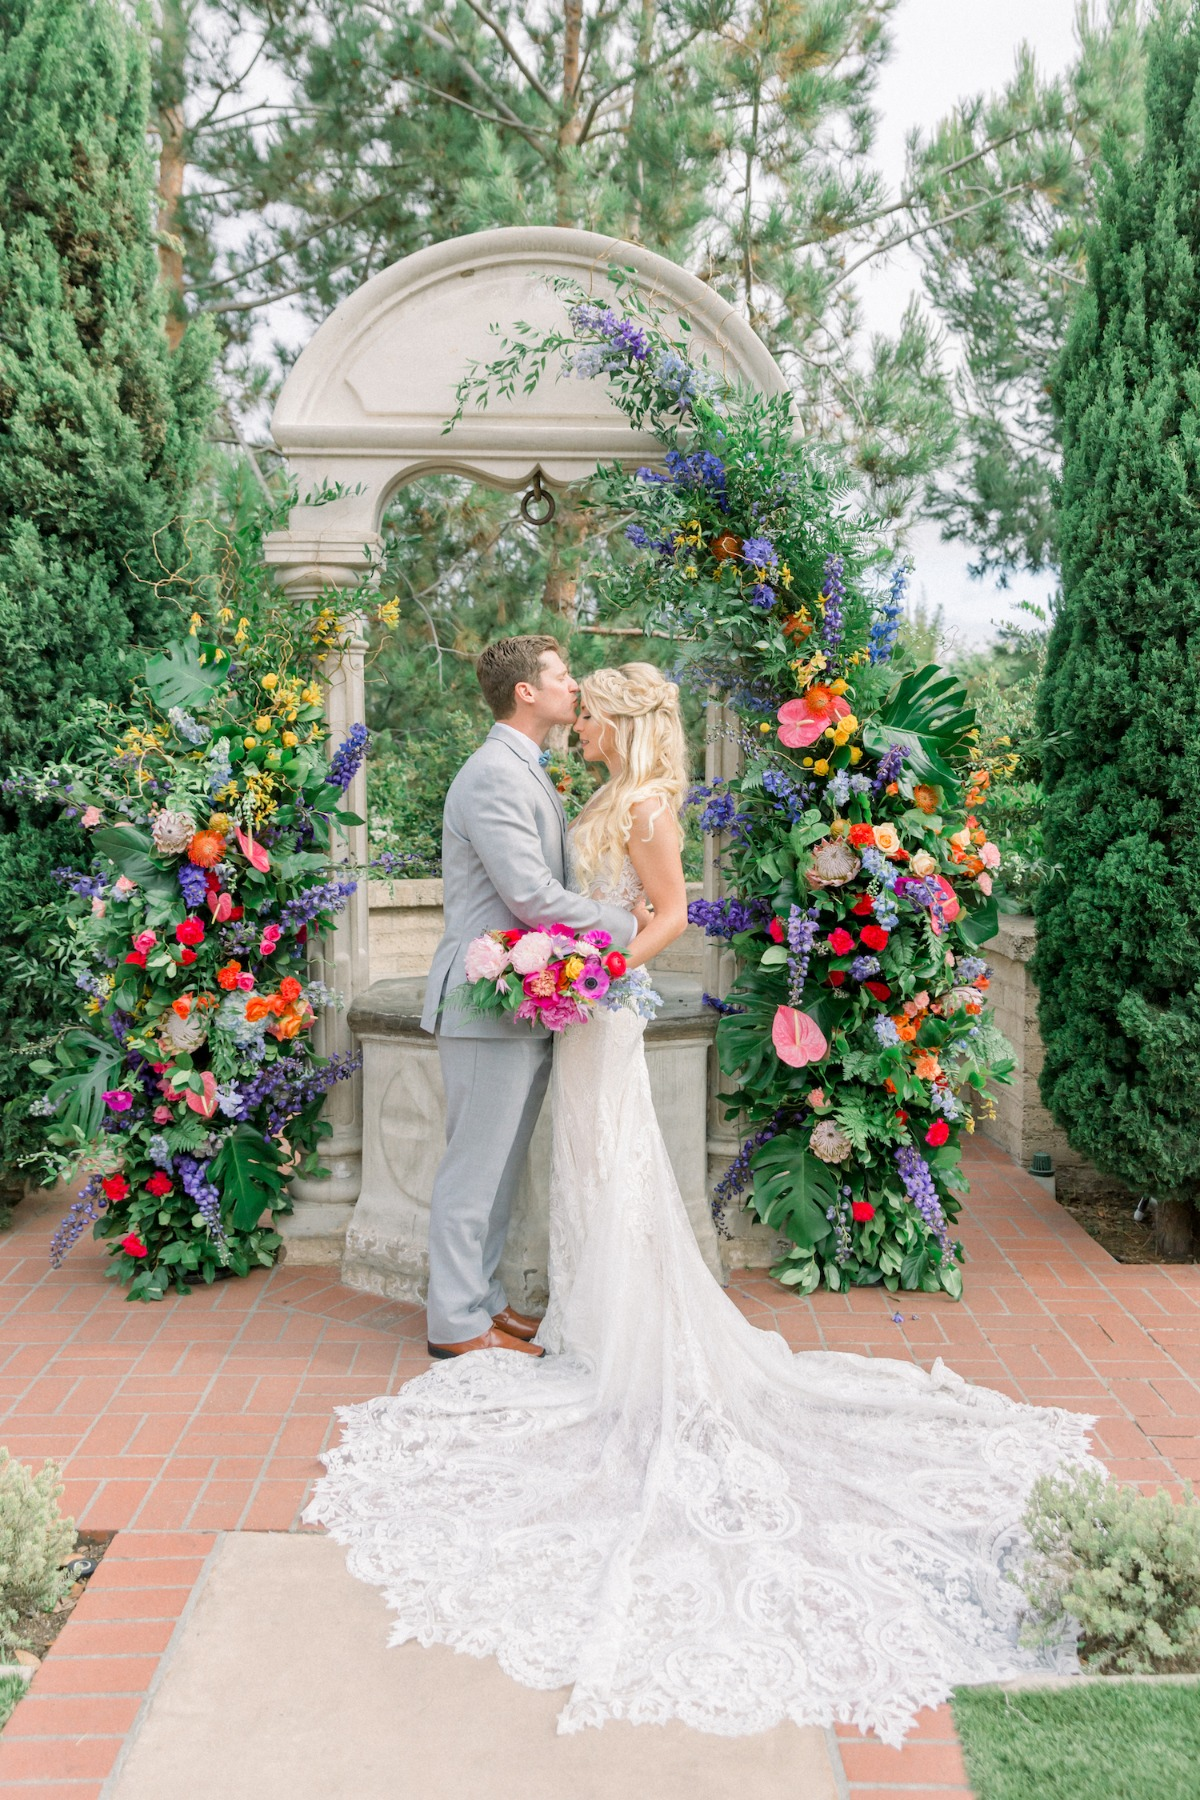 colorful wedding backdrop designed by Tyler Speier Events